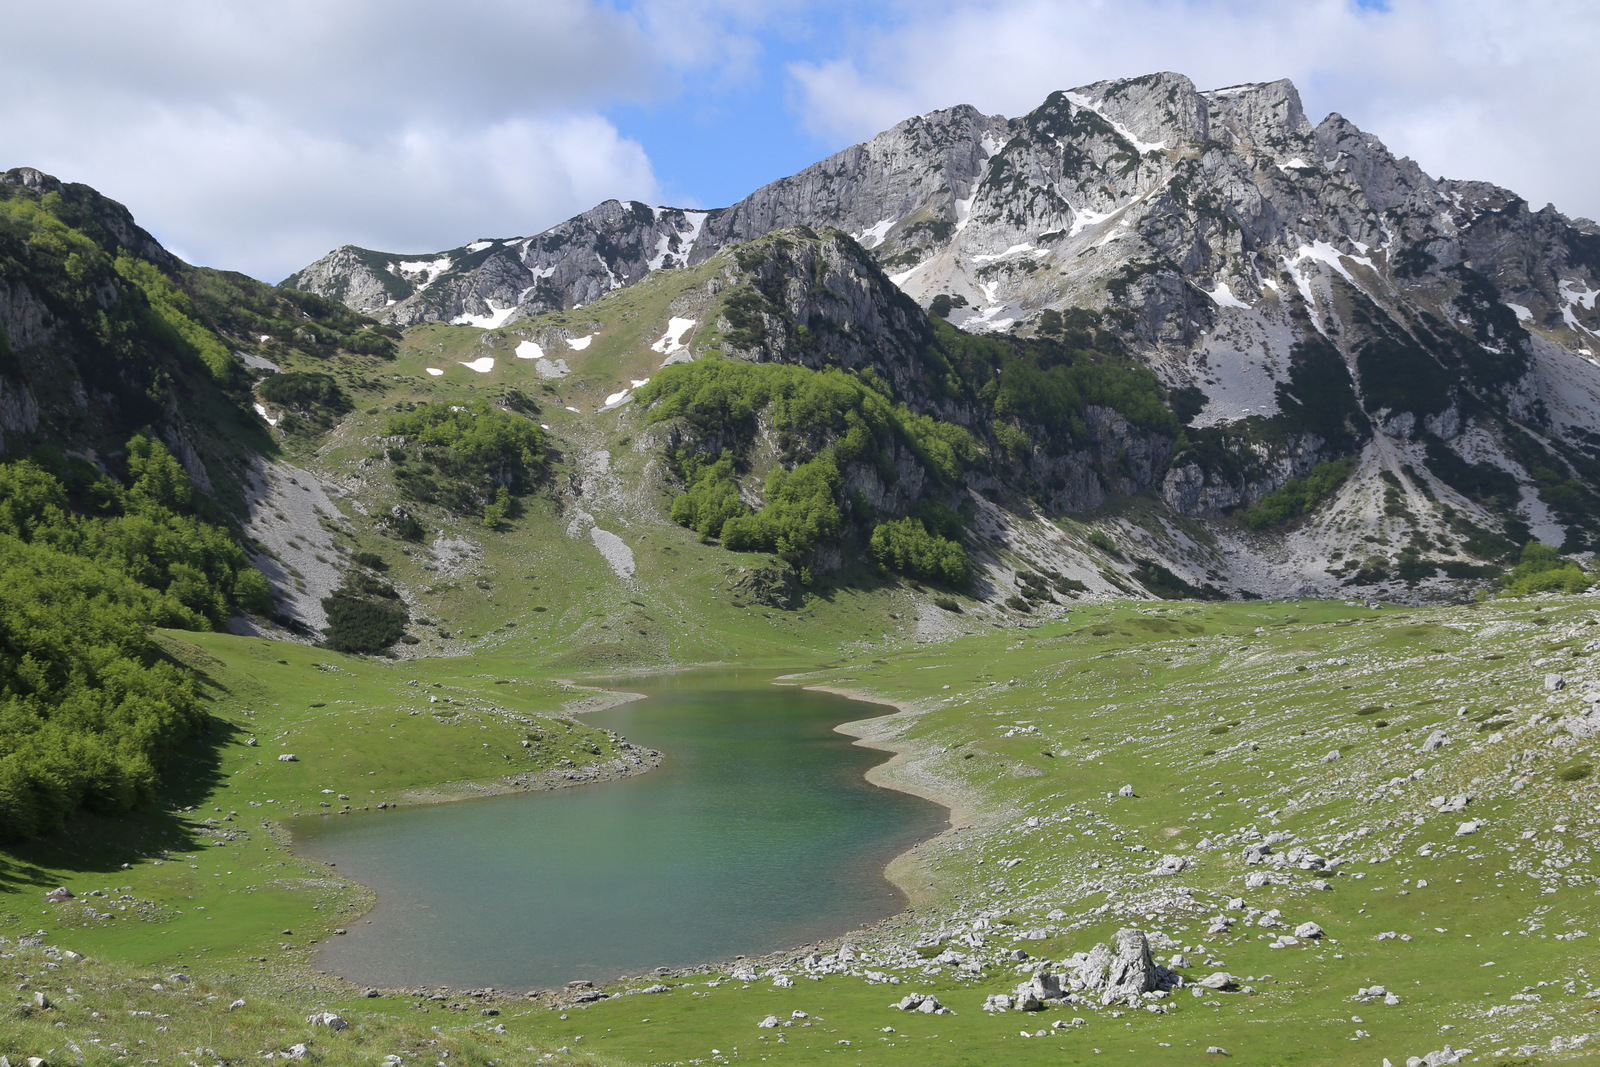 Durmitor, mountain lake near the road from Zabljack to Pluzine